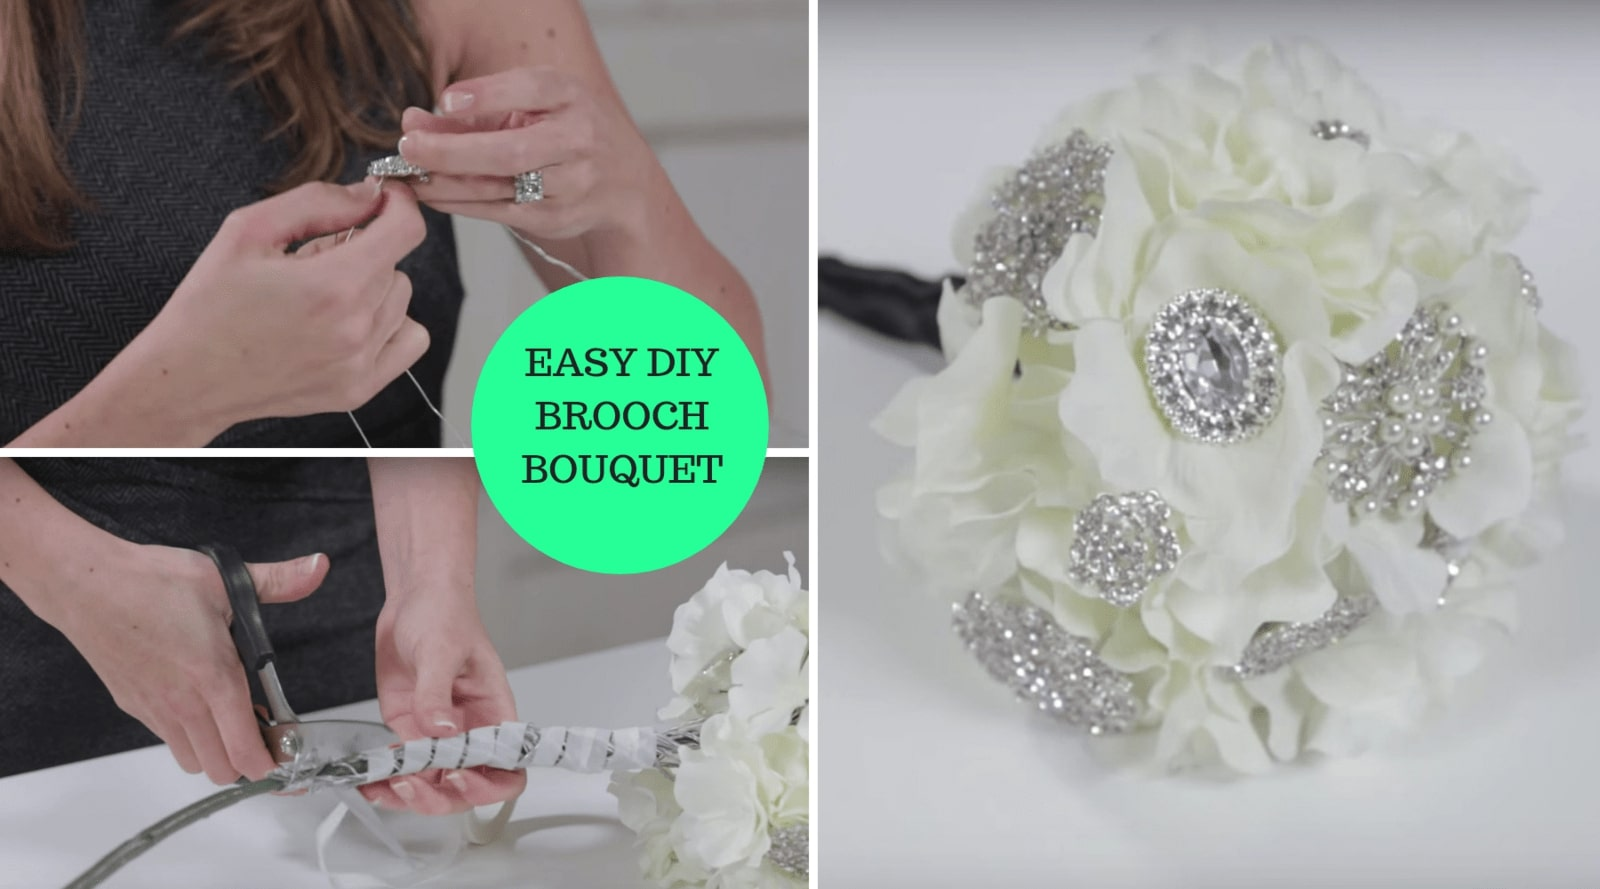 How to Make a Simple Brooch Bouquet